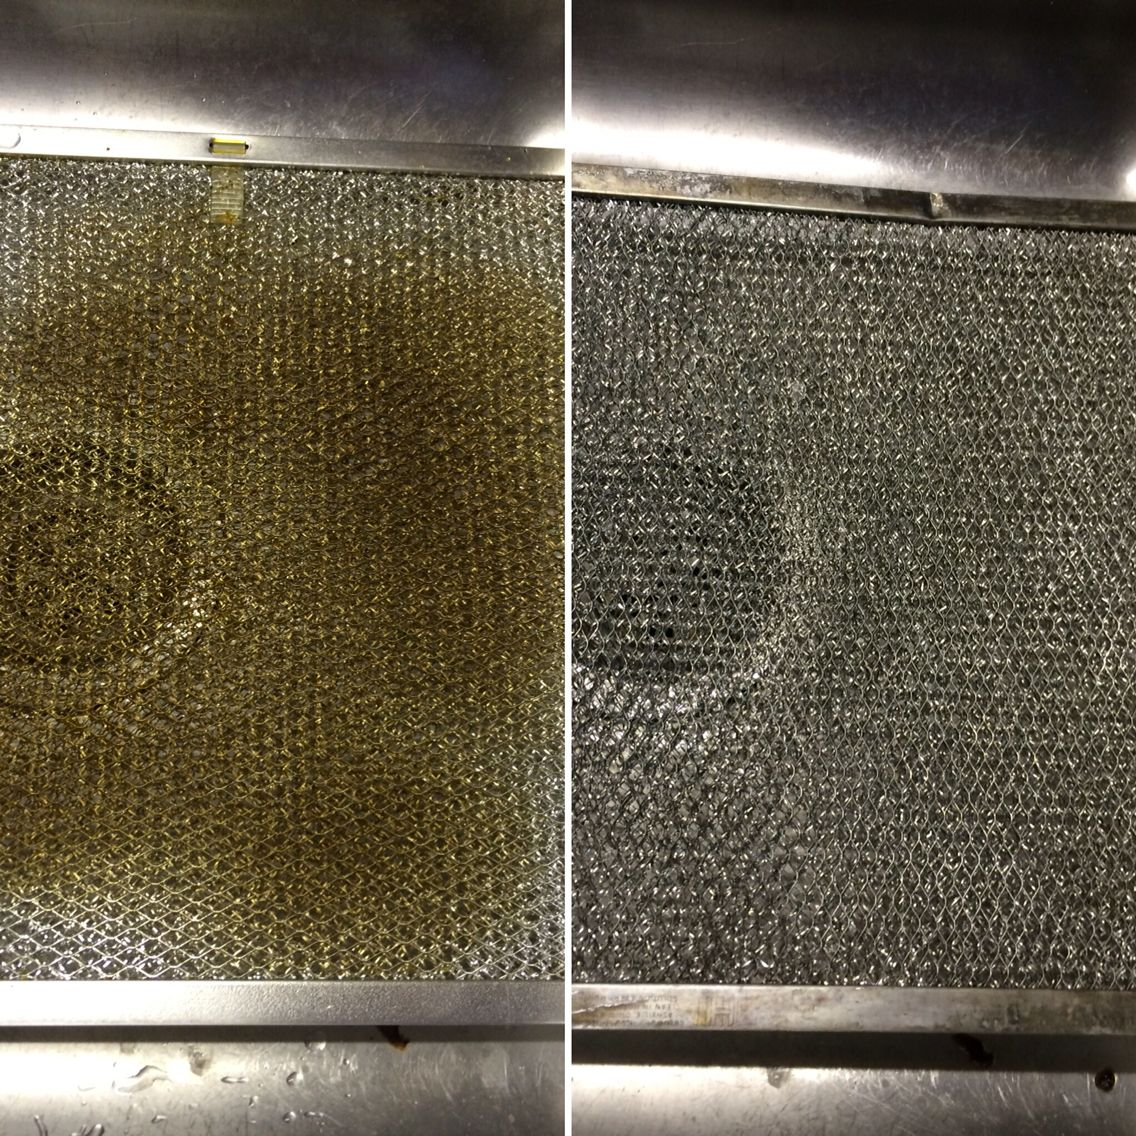 Cleaning Range Hood My Range Hood Vent Before And After Boiling Water And The Norwex